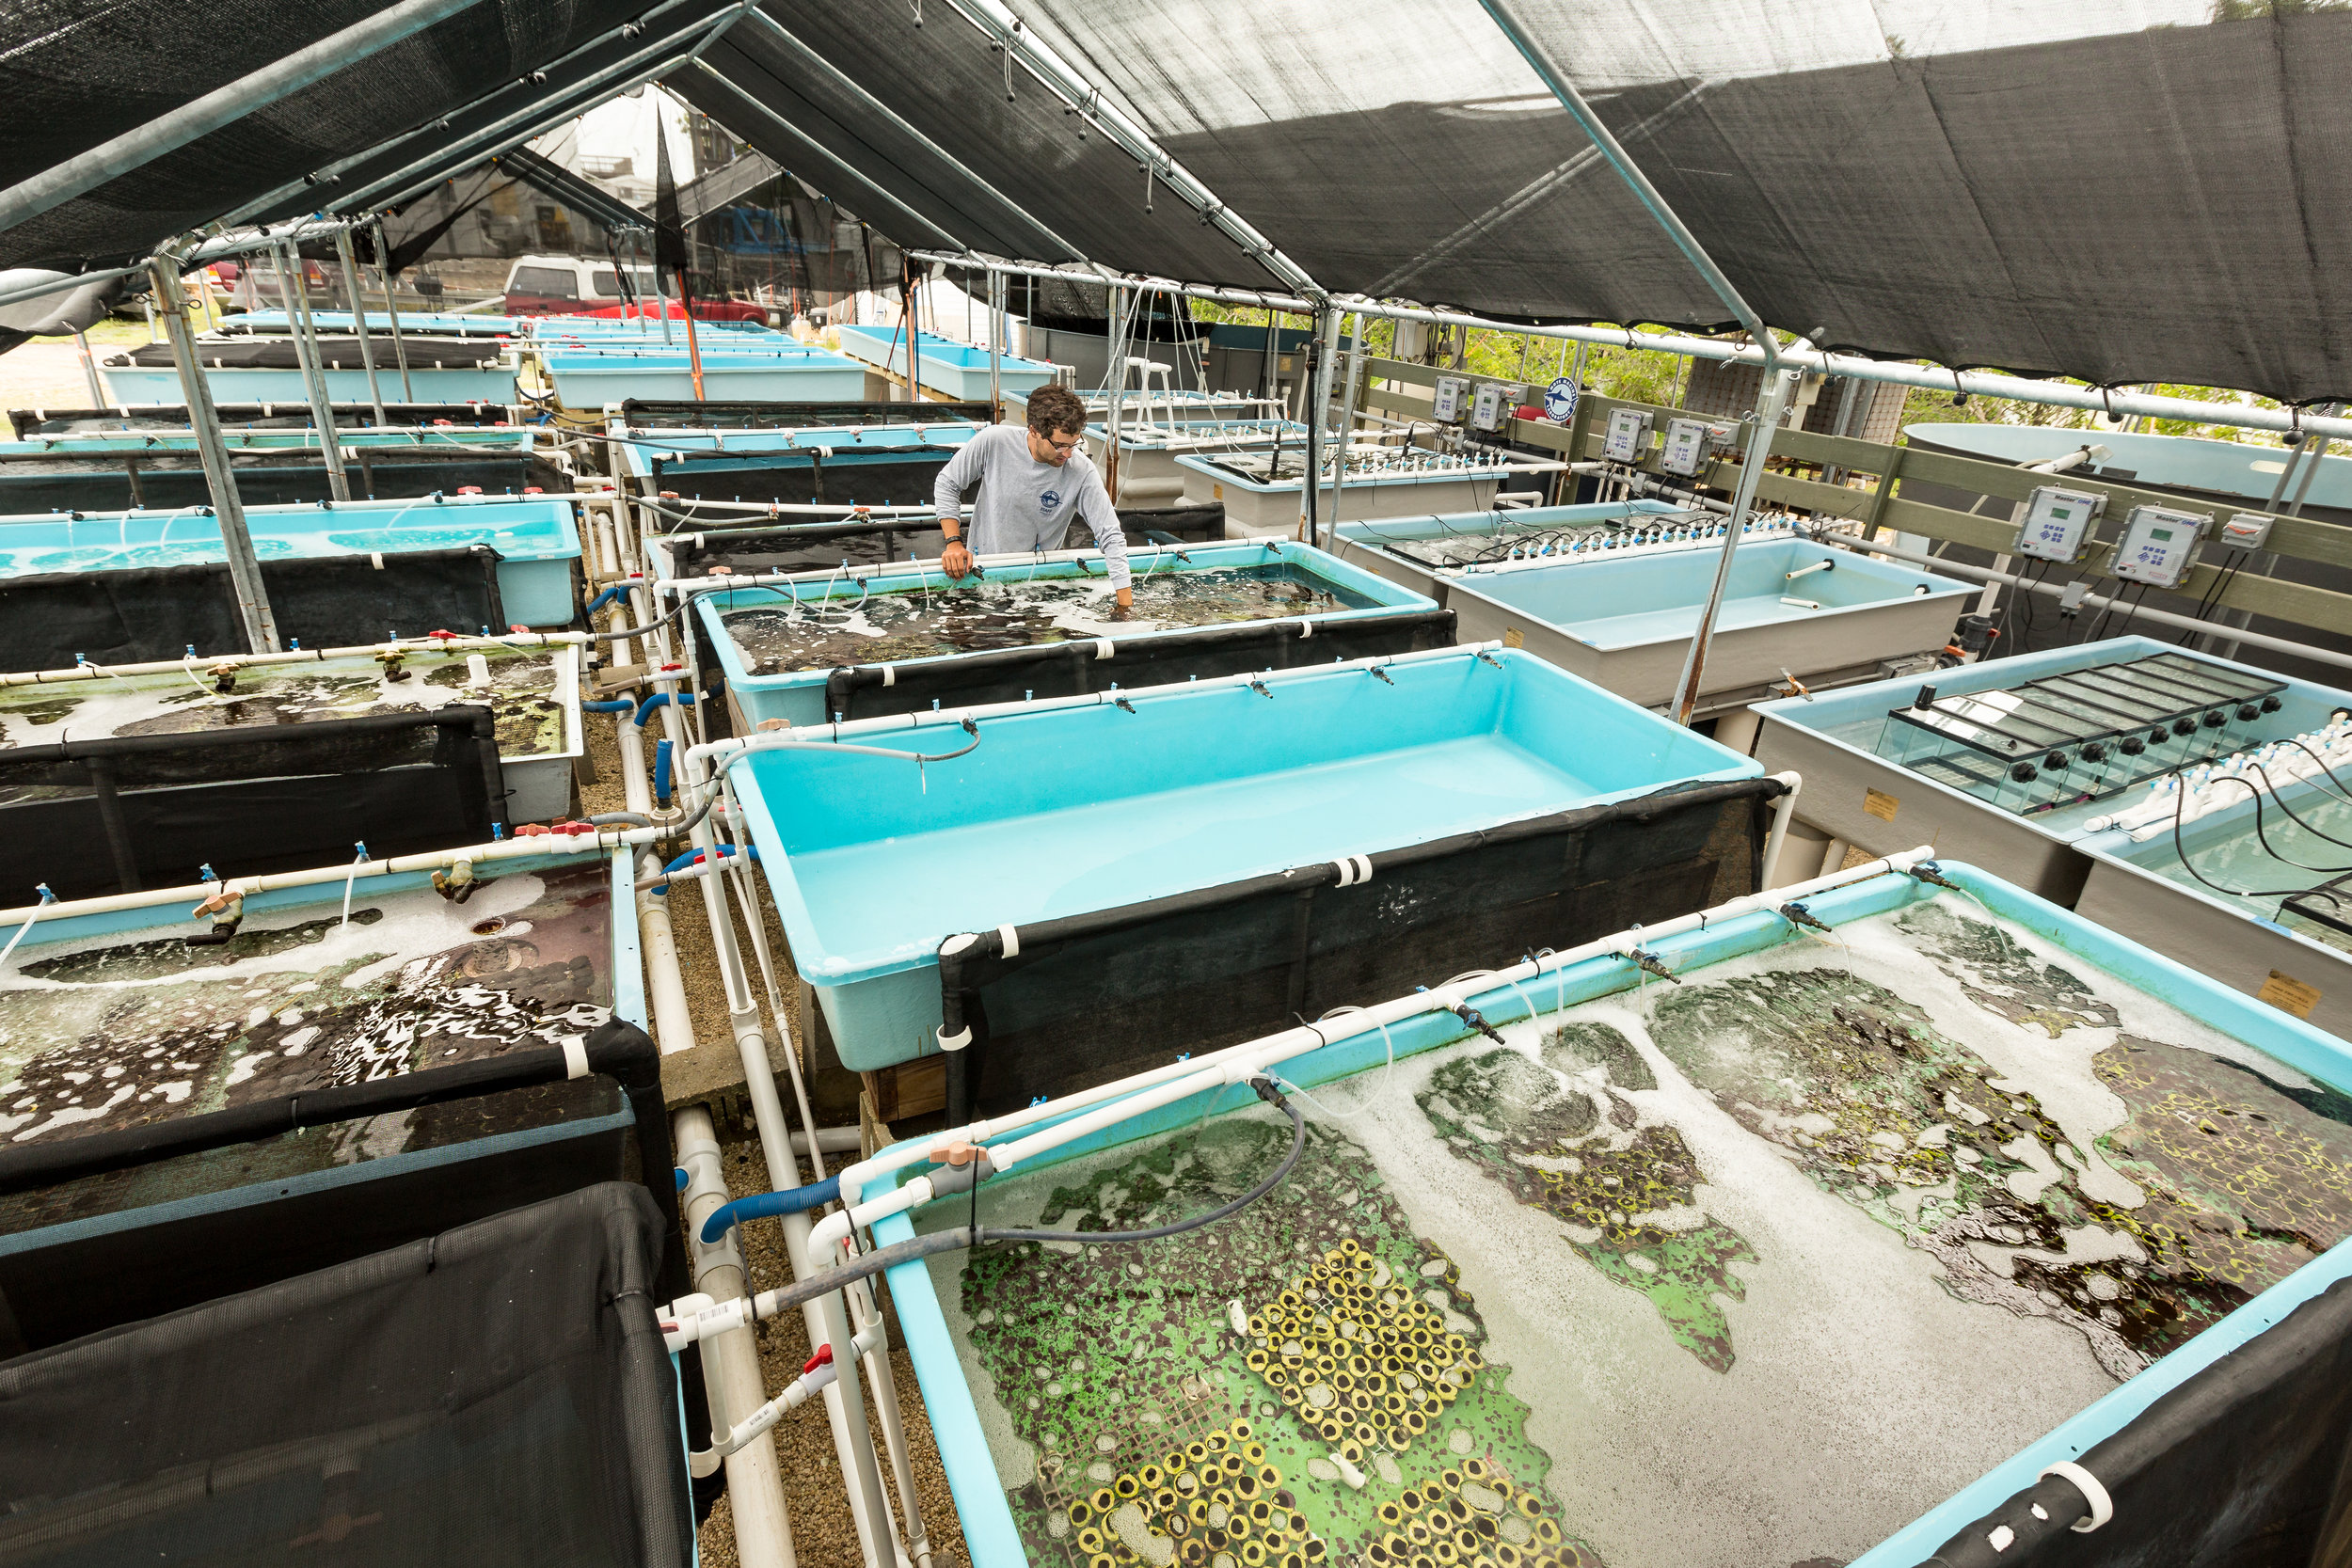 Staff biologist Joey Mandara checks on coral fragments growing in the raceways. Each coral raceway can hold up to approximately 1,000 fragments.